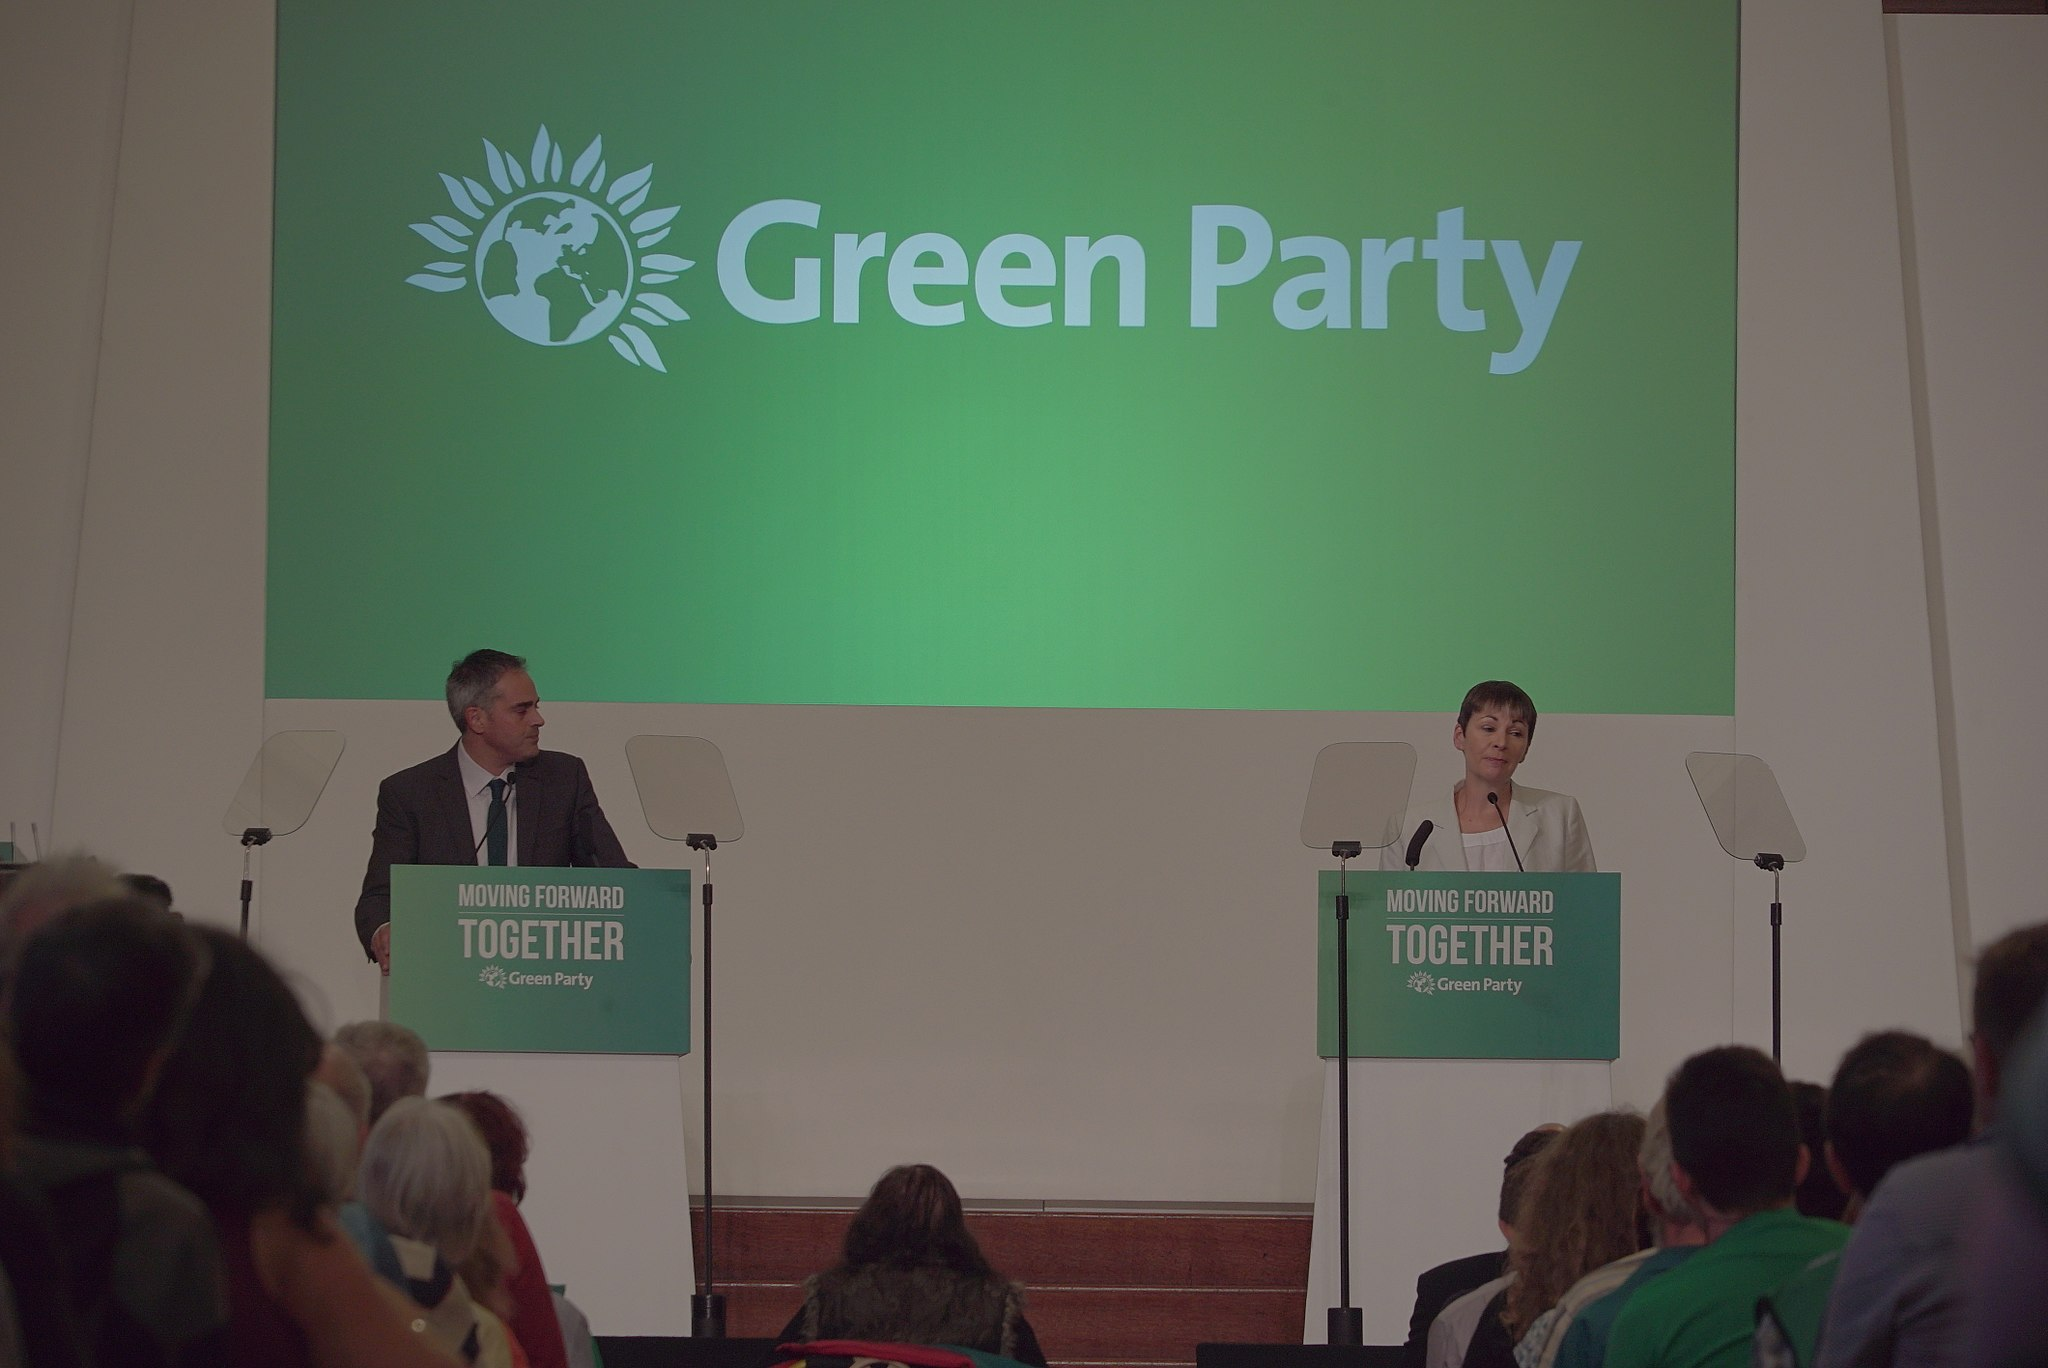 Green Party Autumn 2016 conference. By Jwslubbock (Own work) [CC BY-SA 4.0 (http://creativecommons.org/licenses/by-sa/4.0)], via Wikimedia Commons